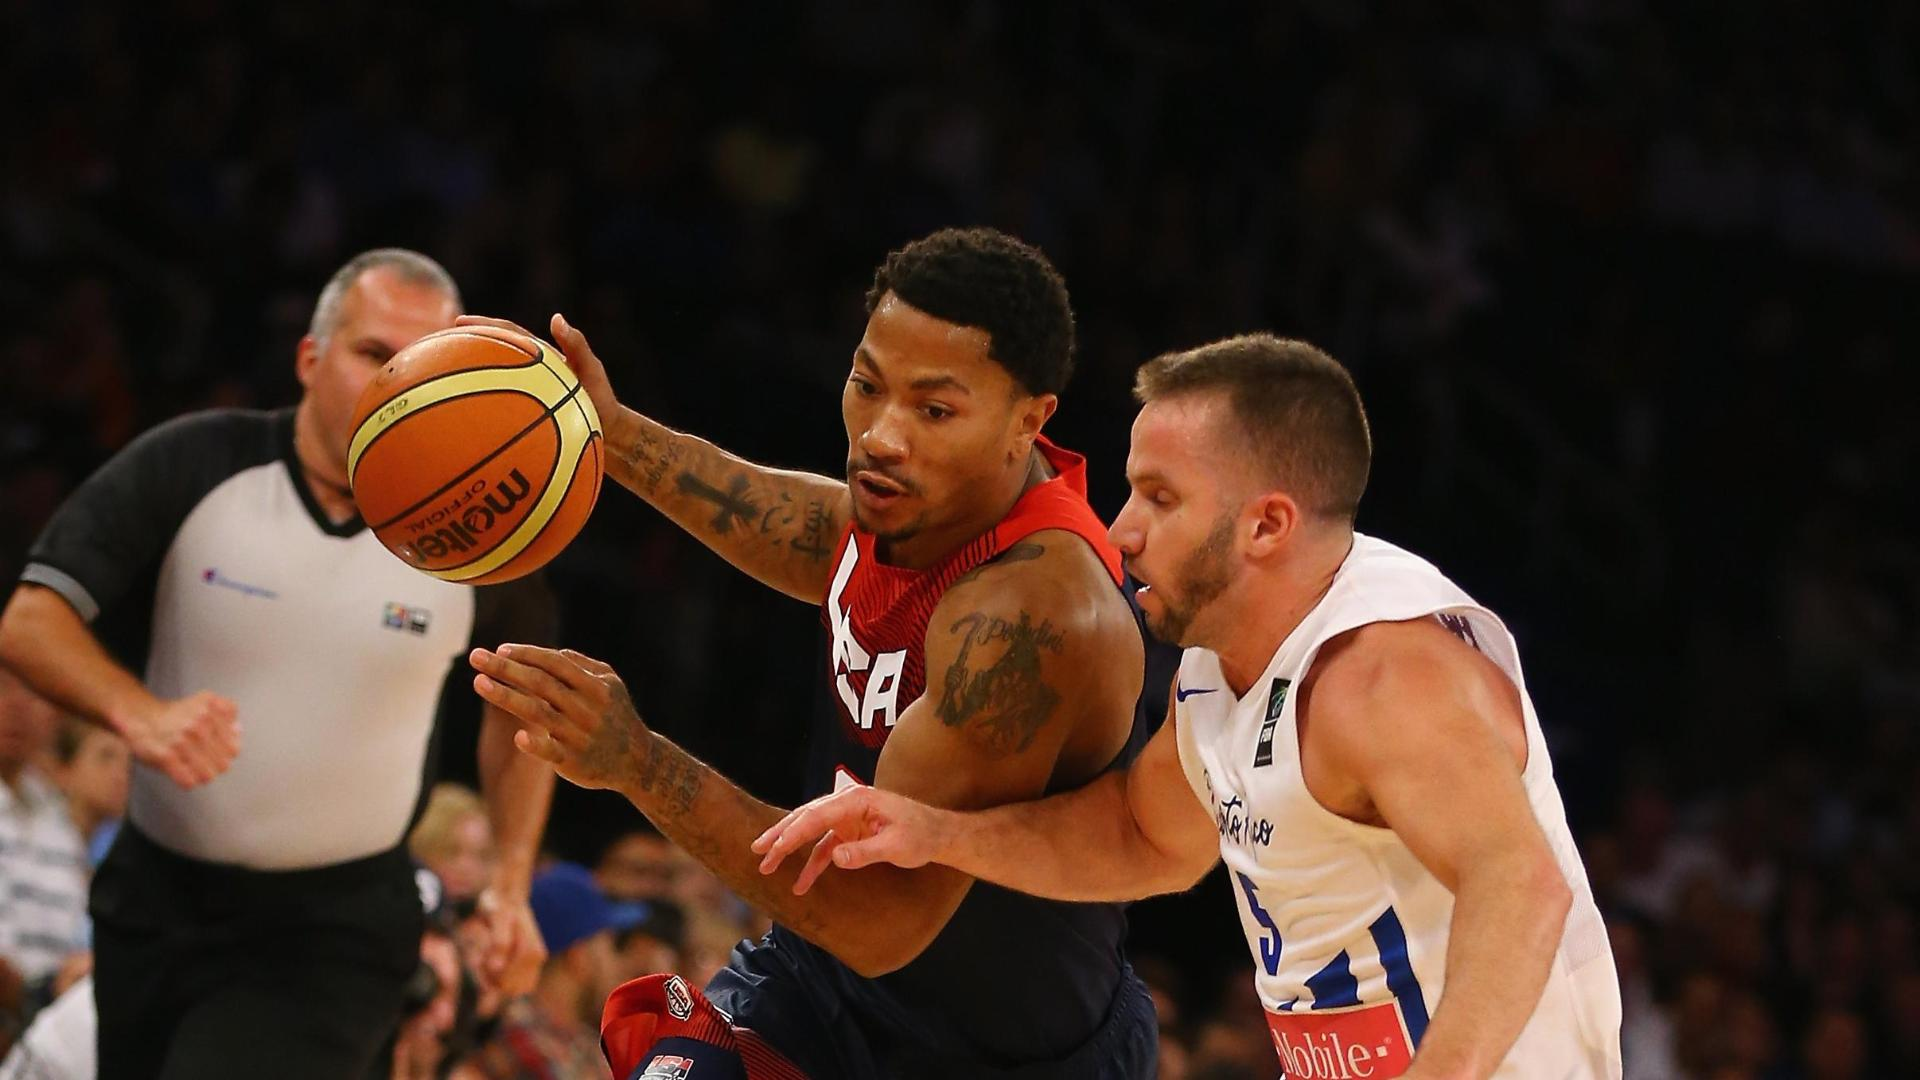 Video - Rose, Team USA Pull Away From Puerto Rico